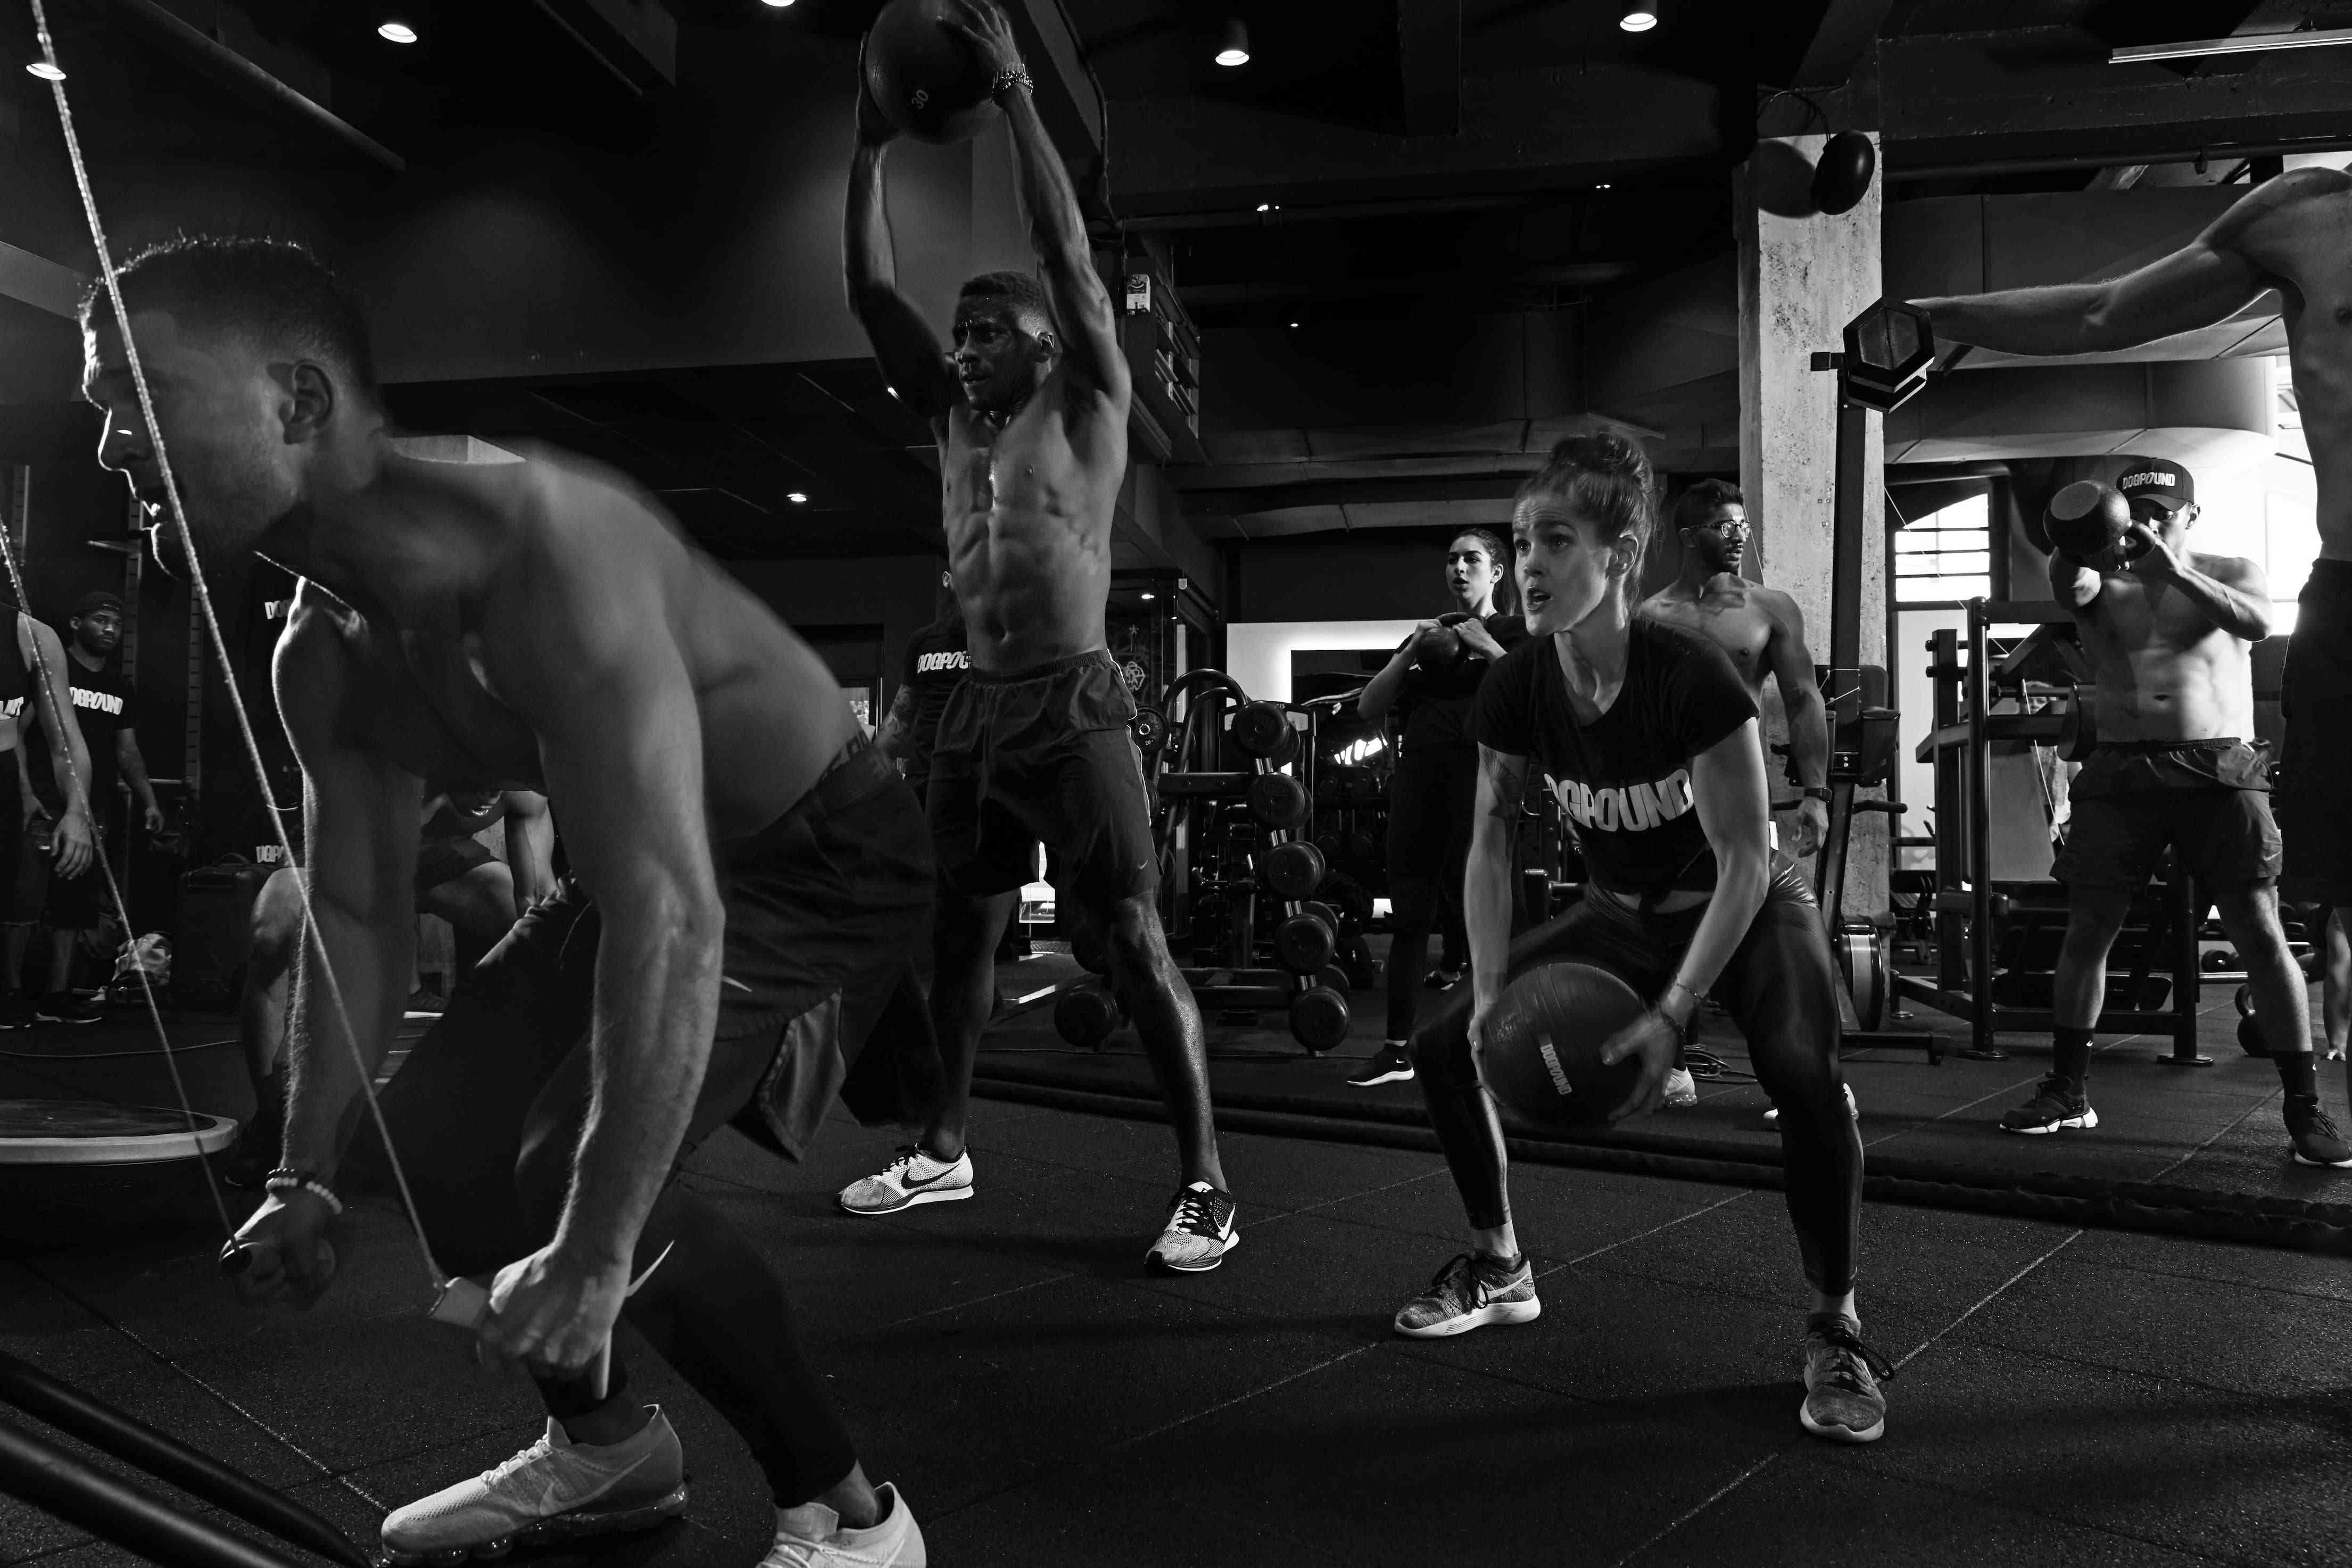 people working out in gym black and white